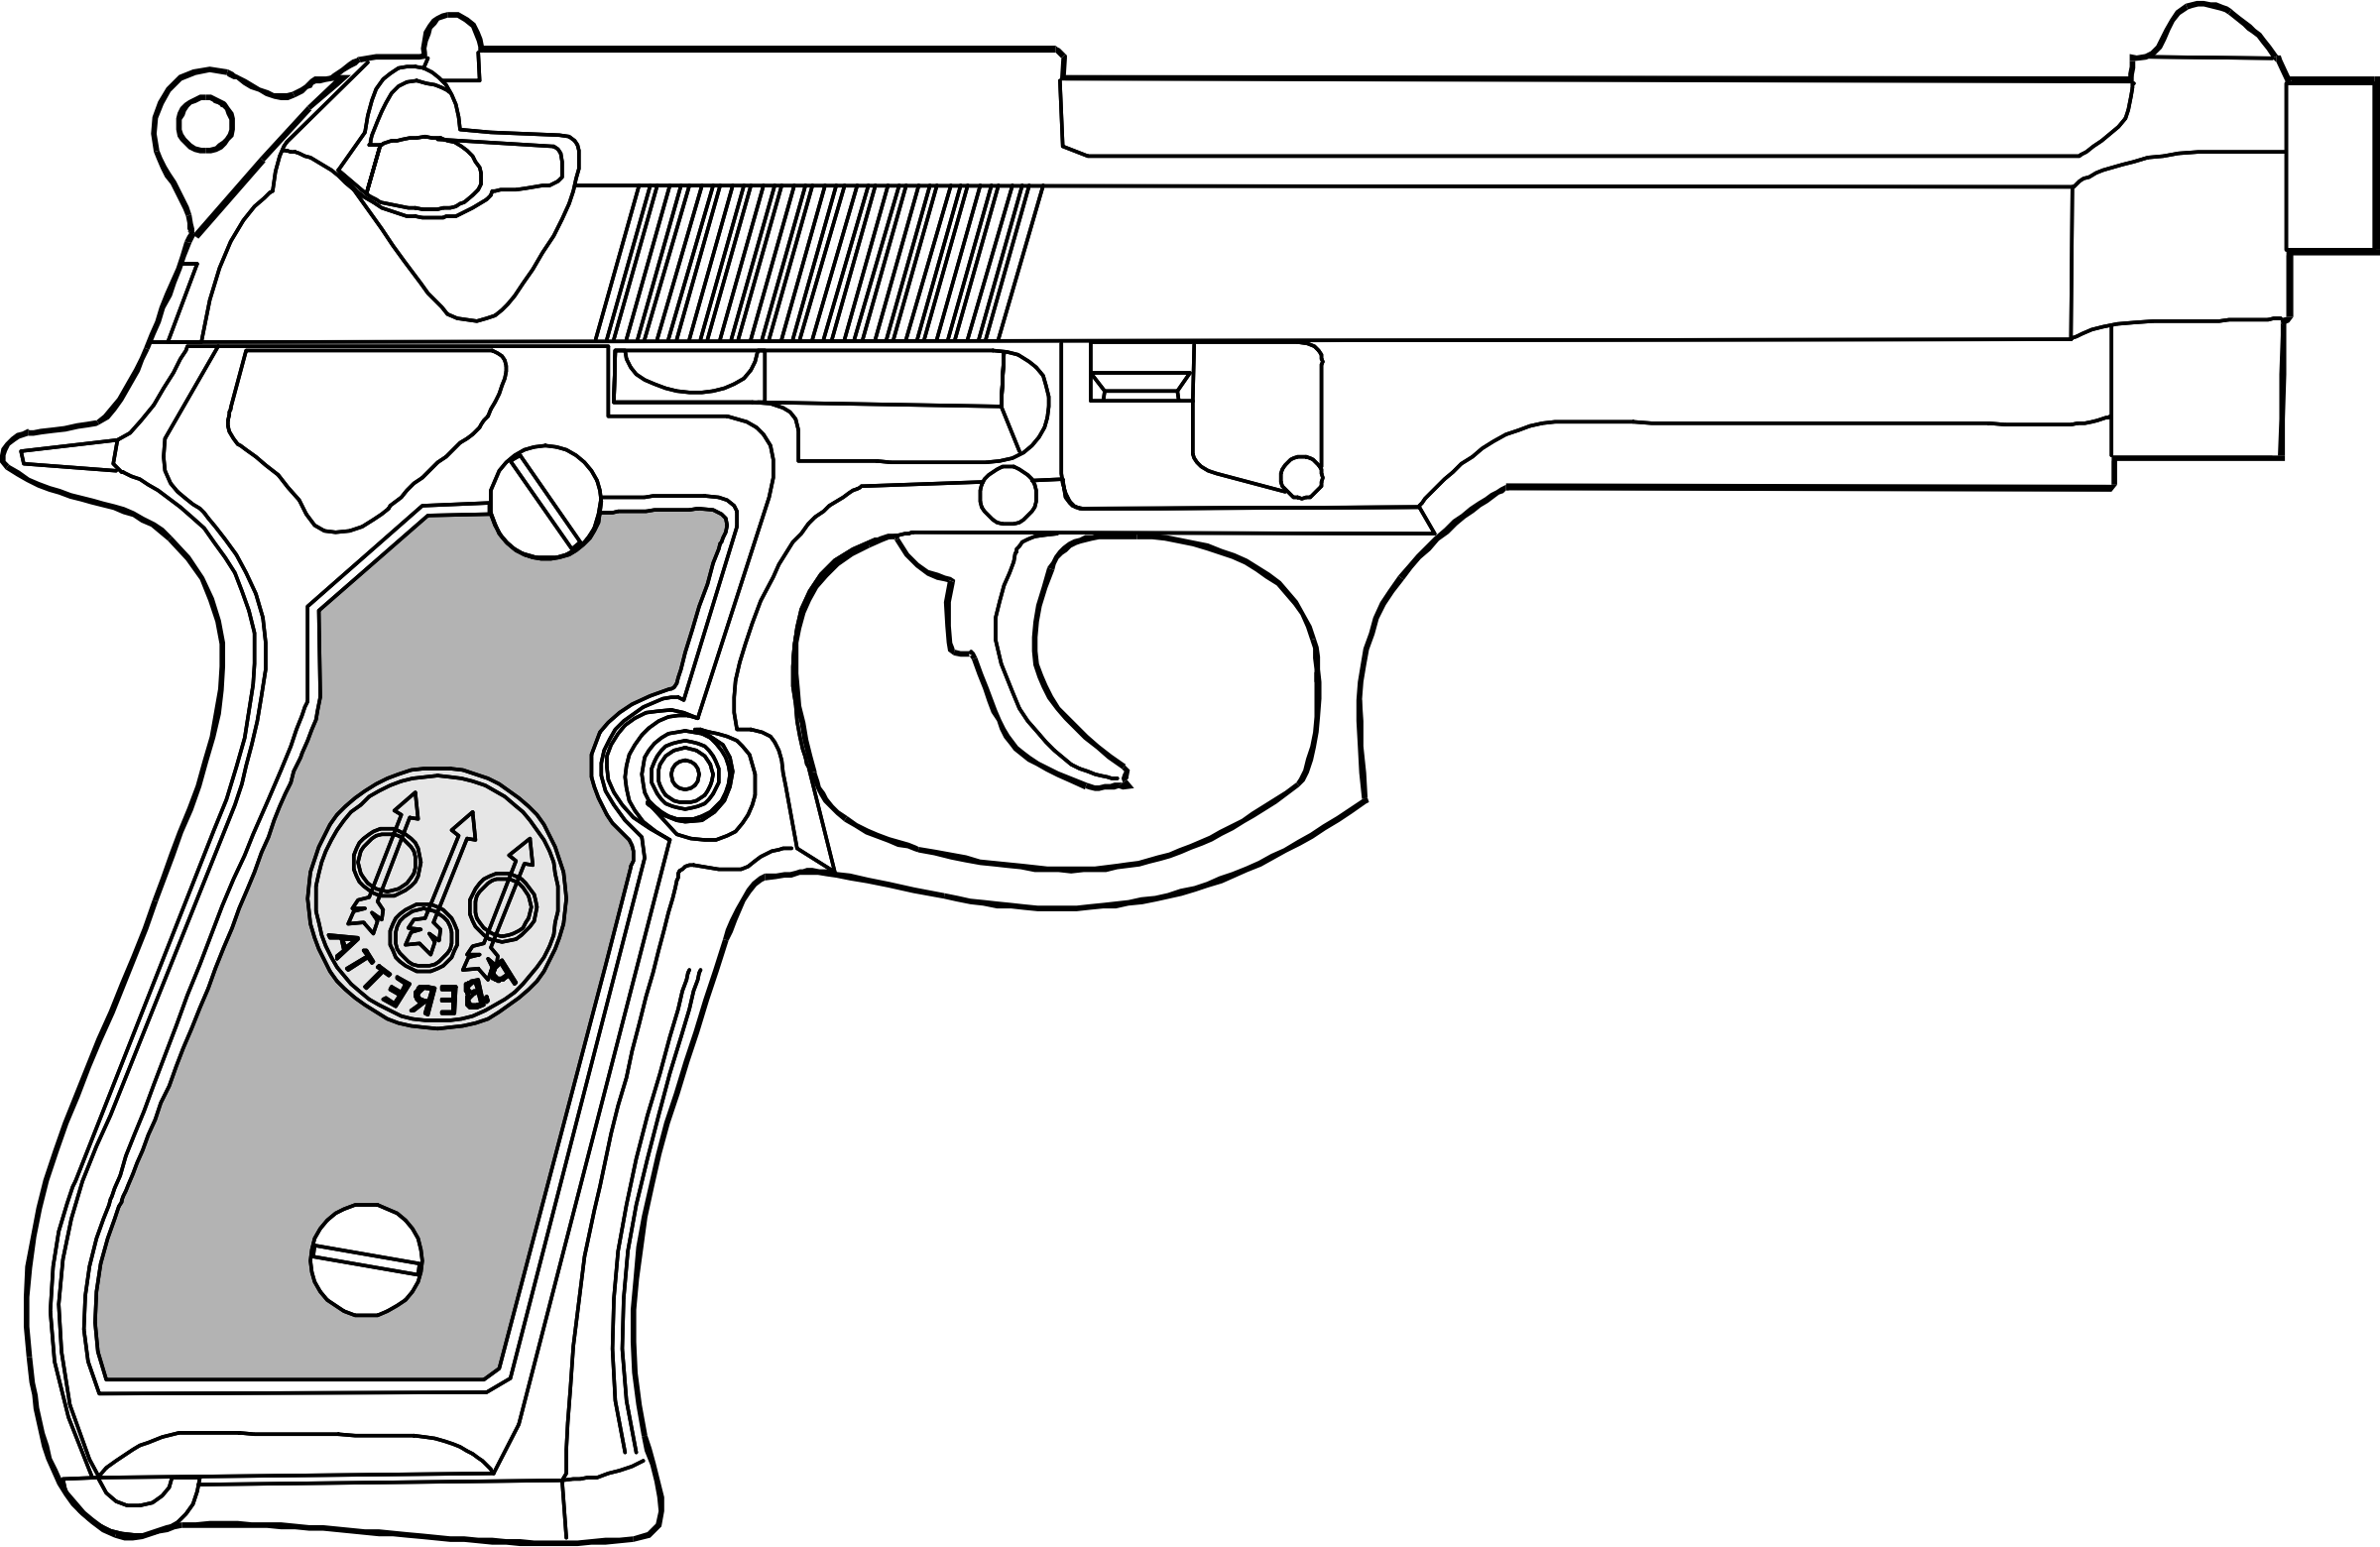 Pistol clipart 9mm, Pistol 9mm Transparent FREE for download.